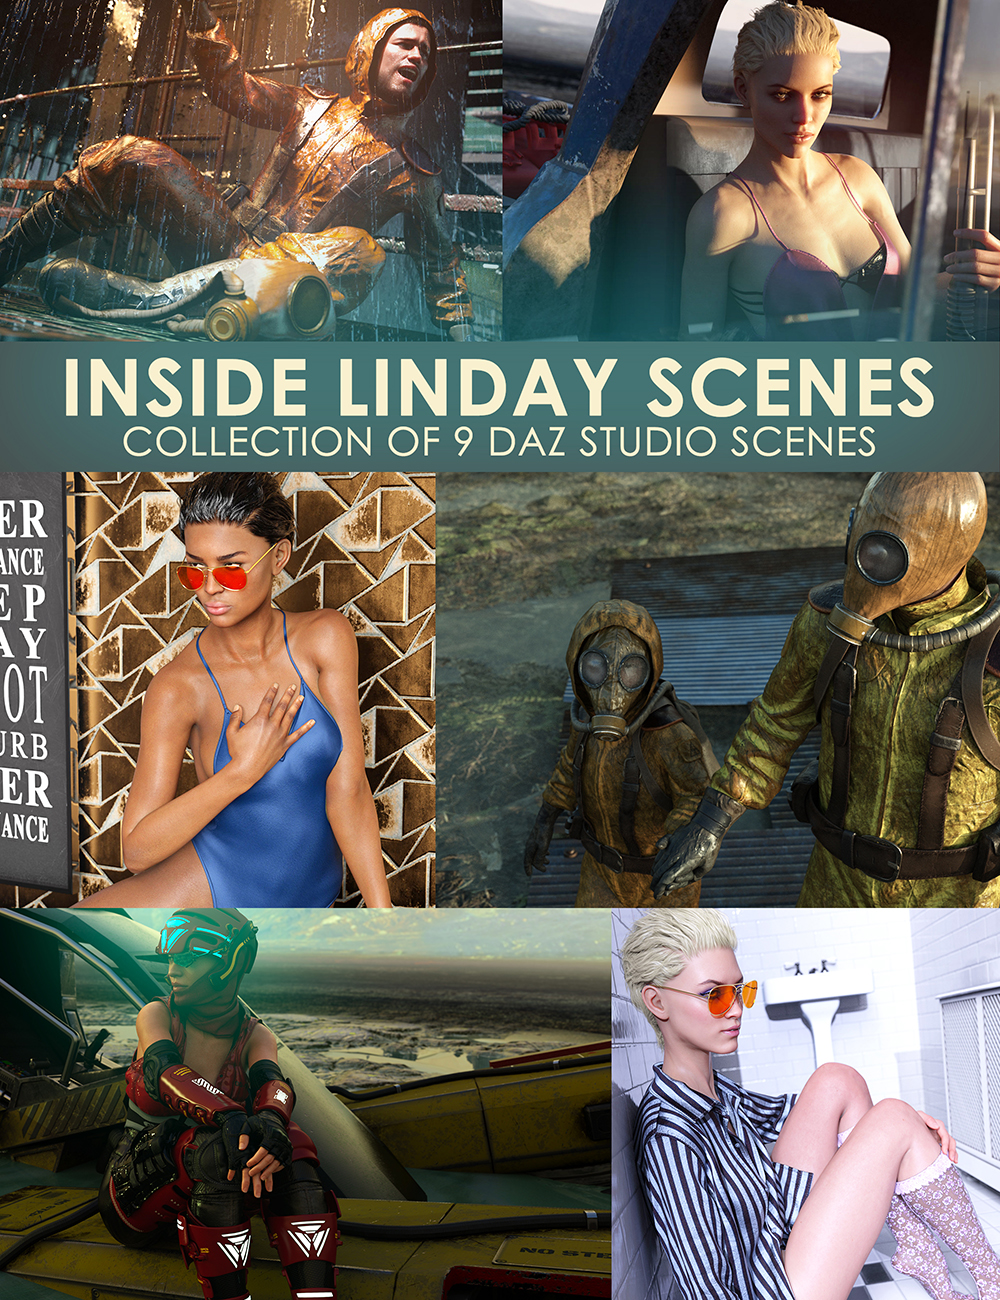 Inside Linday's Daz Studio Iray Scenes by: Linday, 3D Models by Daz 3D